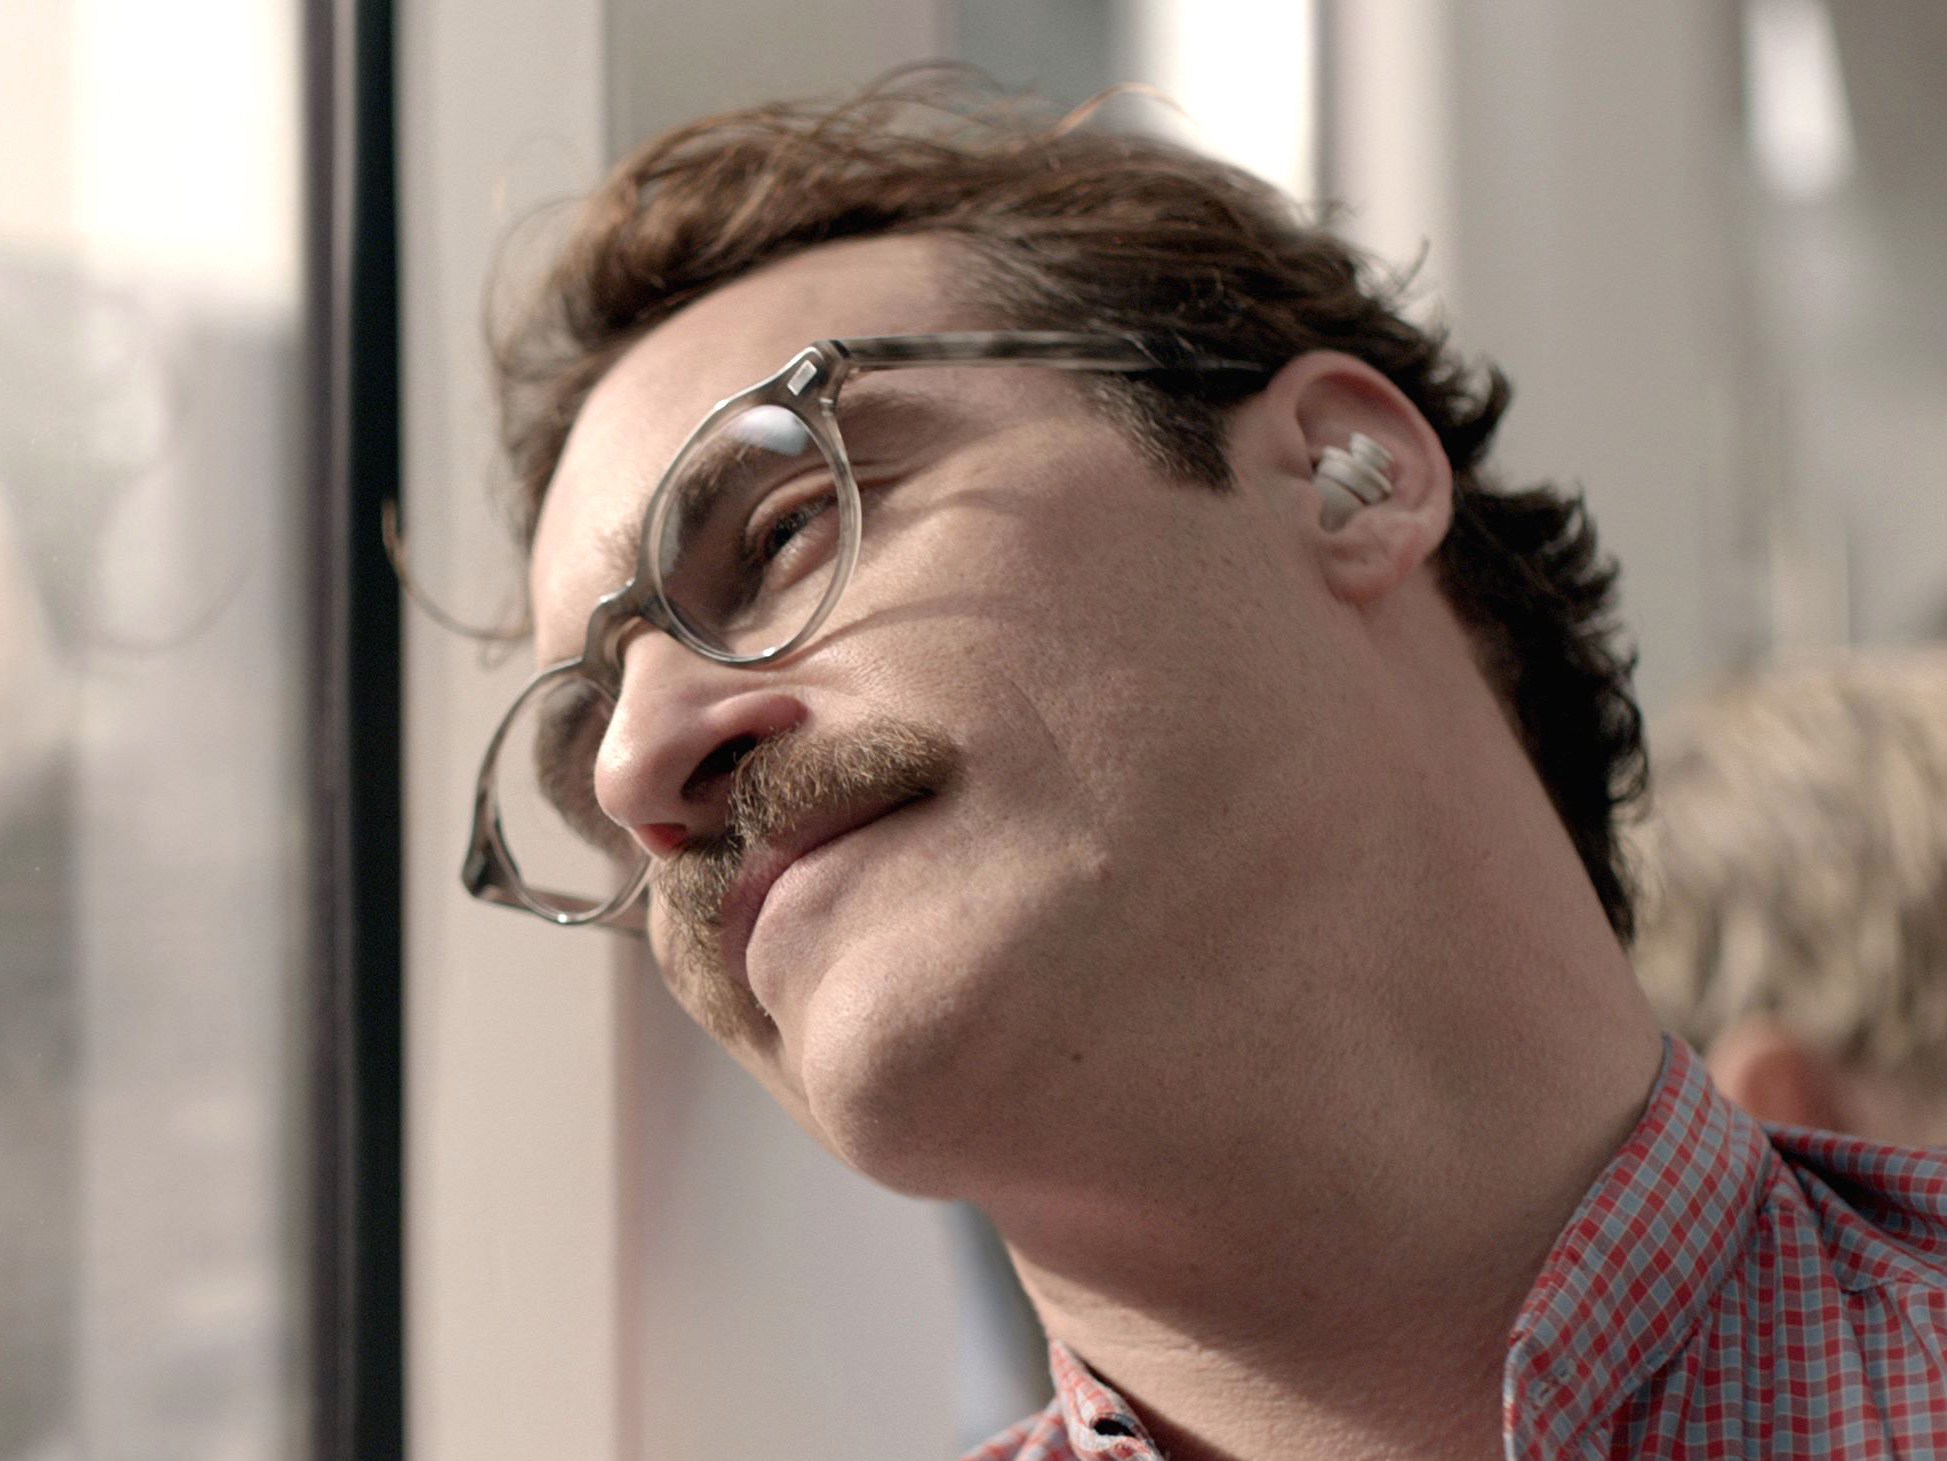 This is unfortunately not what apple's airpods look like, but apple definitely wants us to like siri the way joaquin likes scarlett's disembodied voice in this movie.